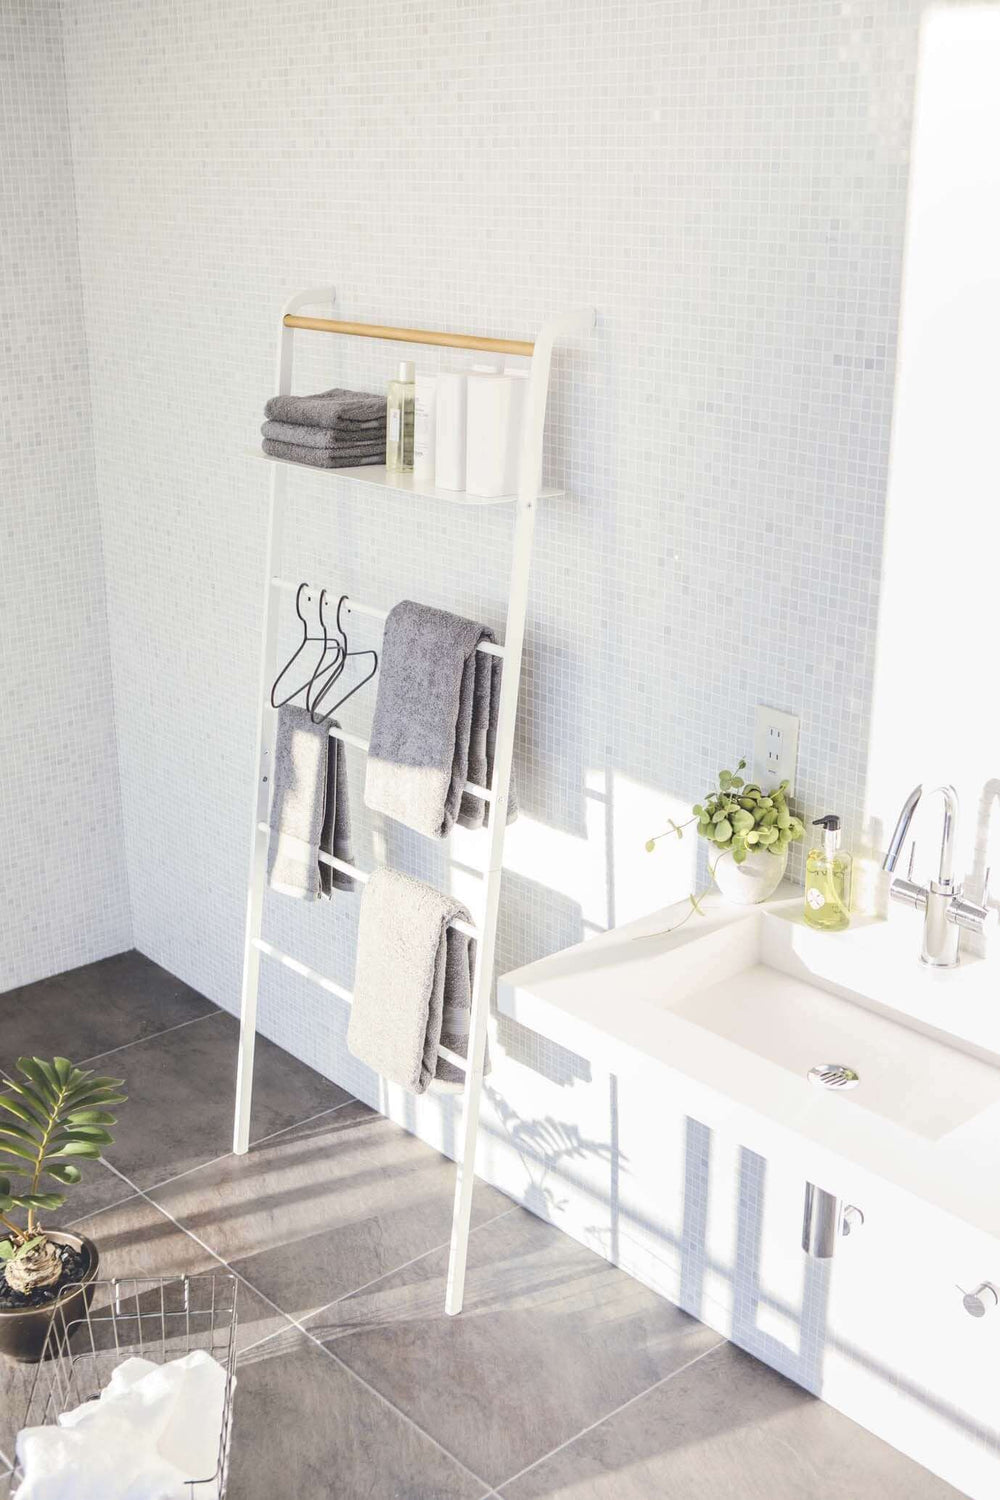 Towels and bath items hanging from white Leaning Ladder in bathroom